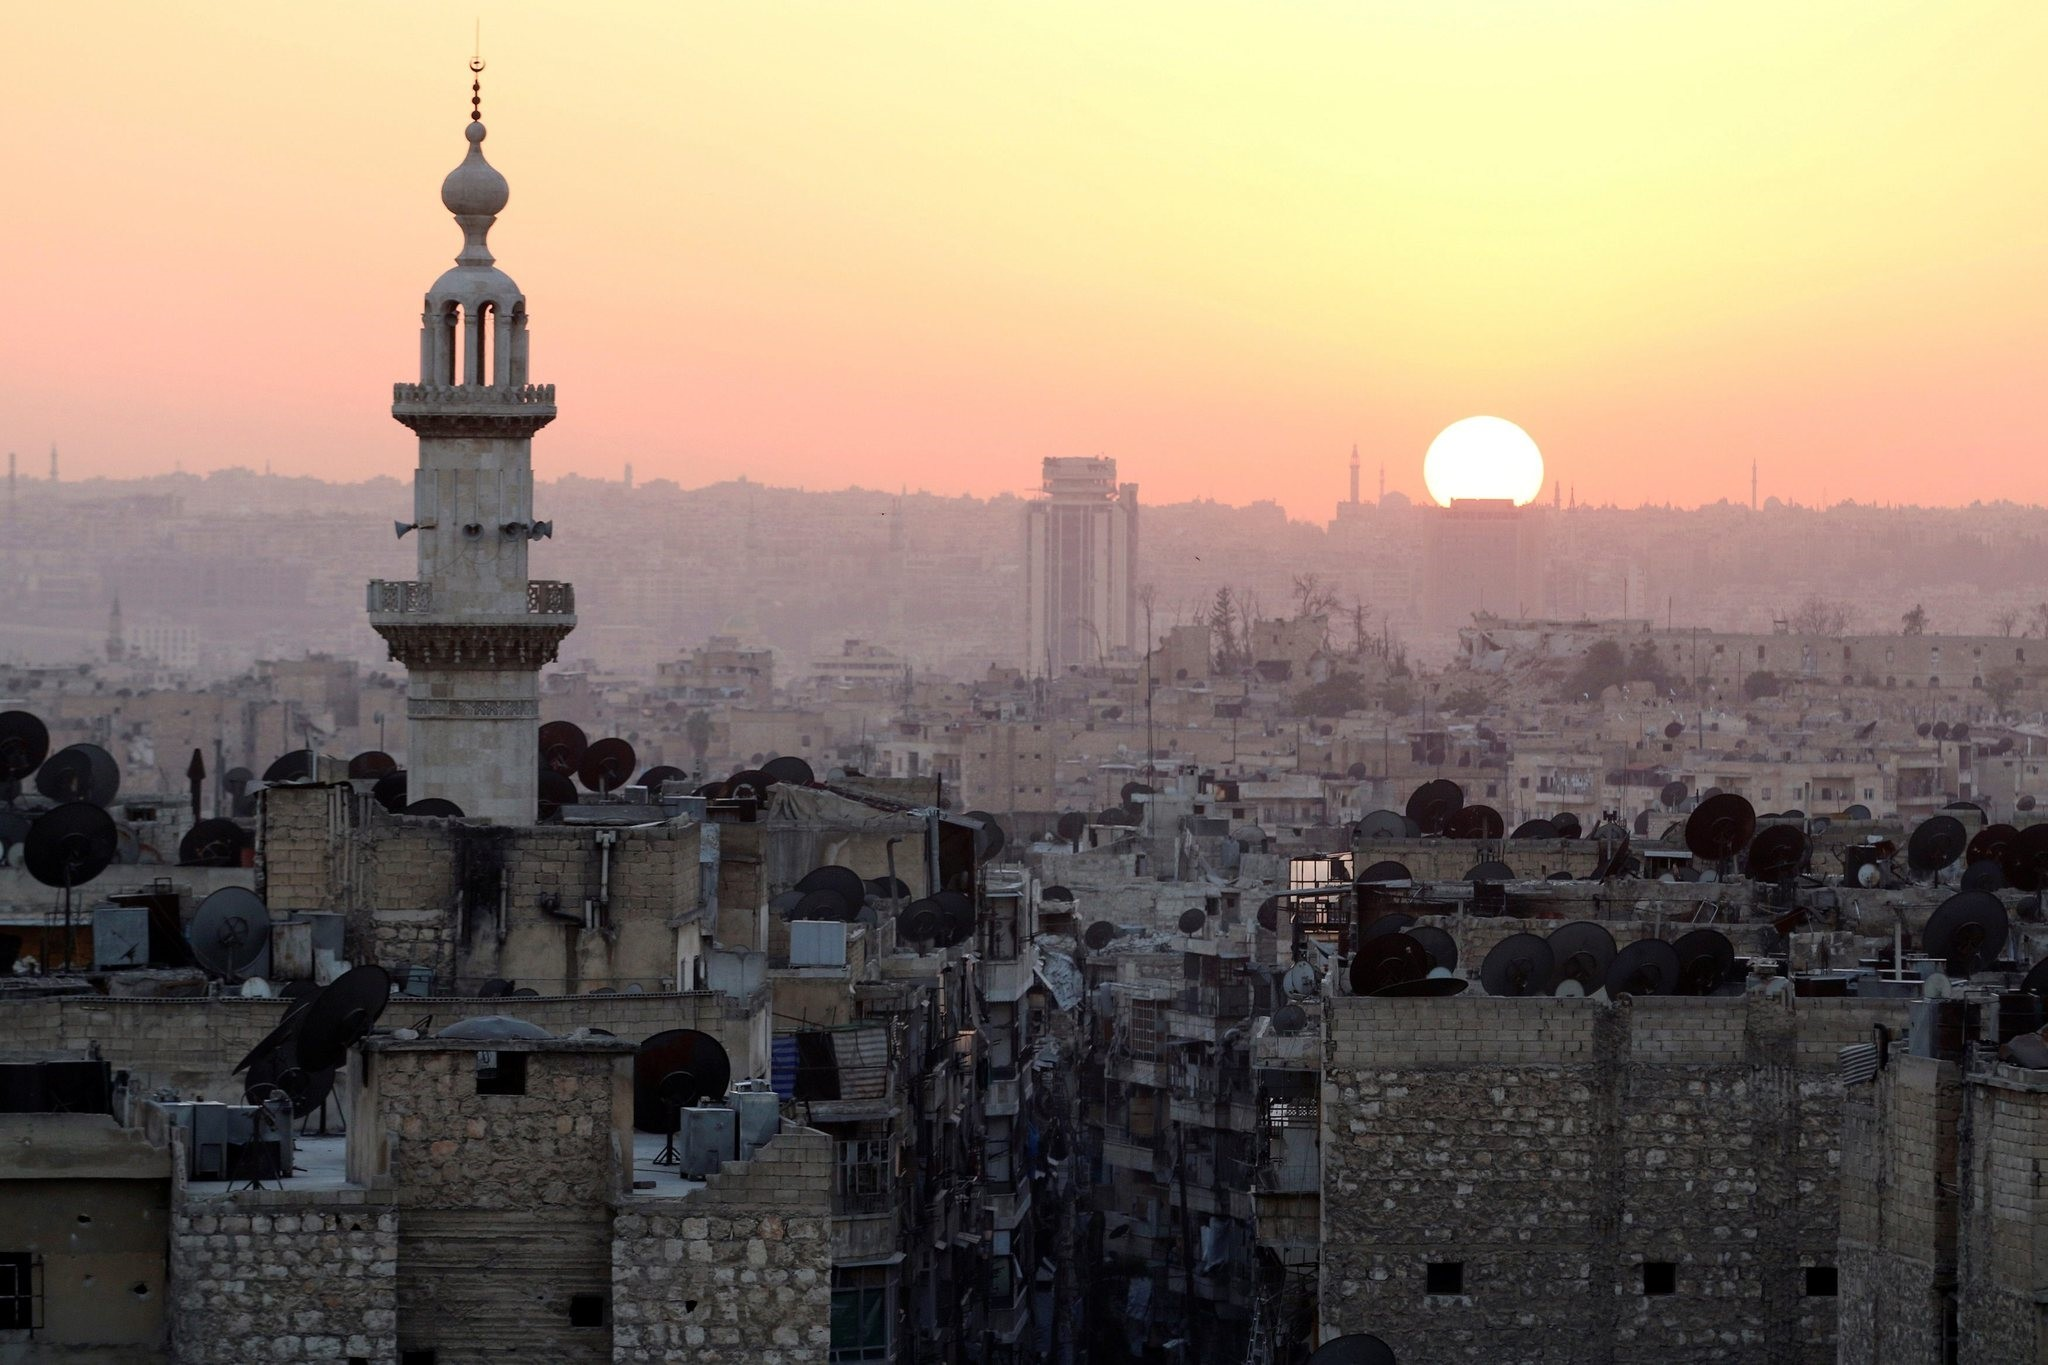 The sun sets over Aleppo, as seen from what was then the opposition-held part of the city, Syria, Oct. 5, 2016.